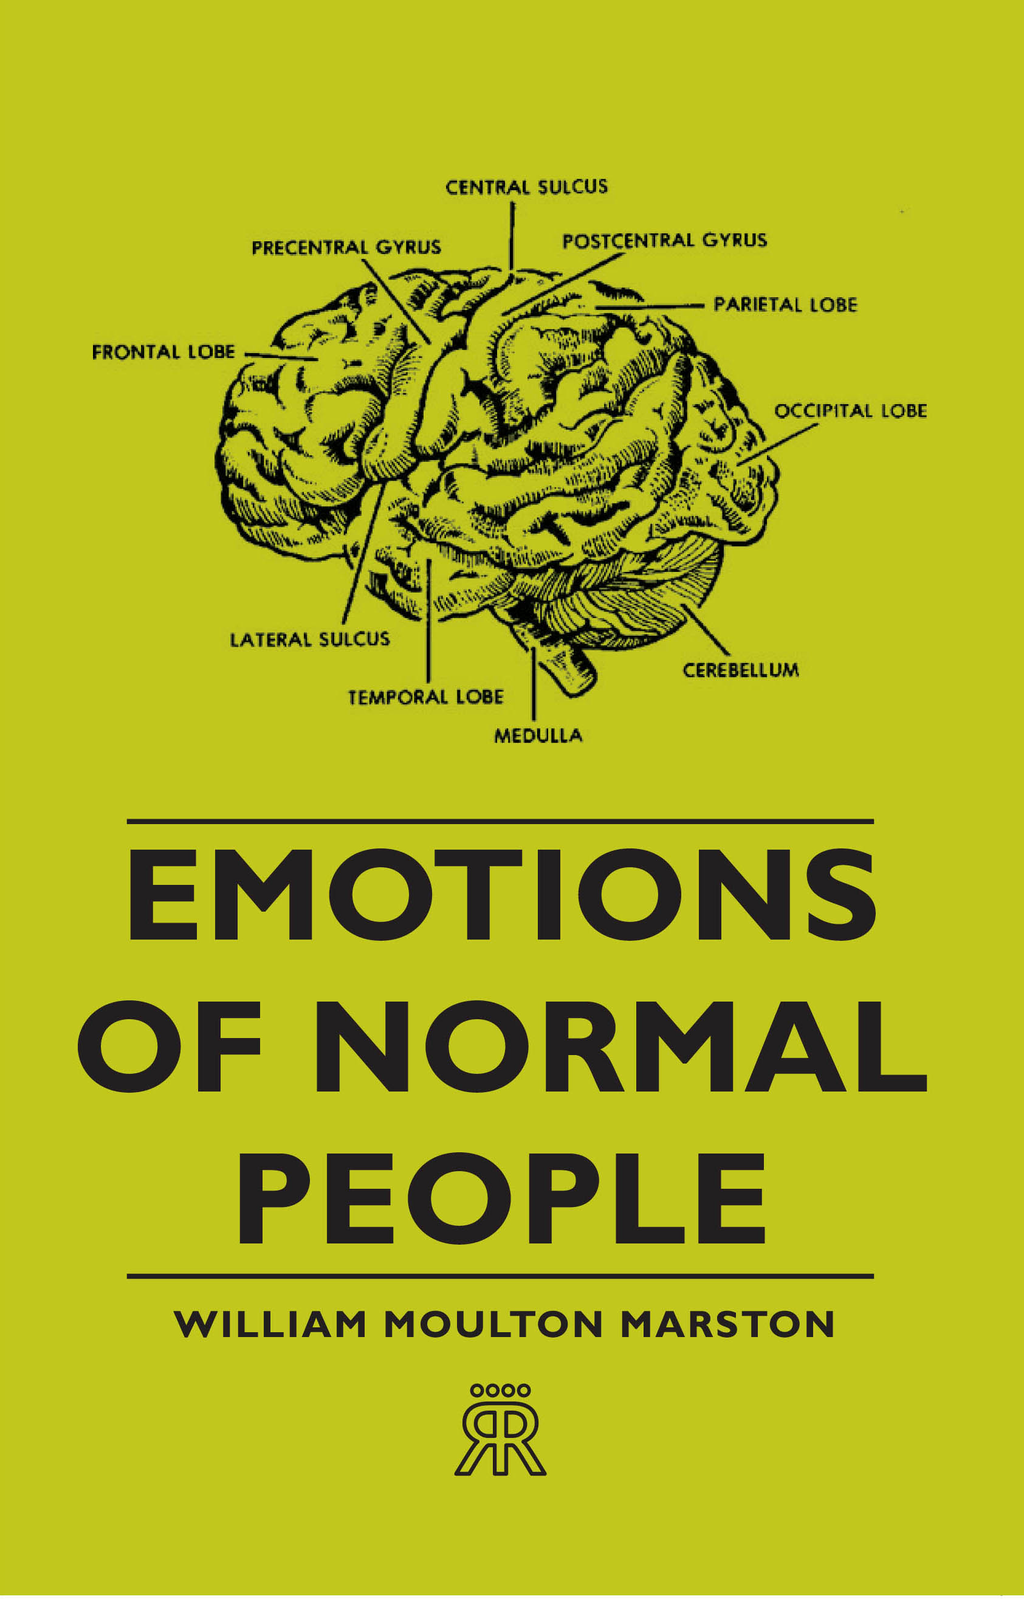 Emotions Of Normal People By: William Moulton Marston